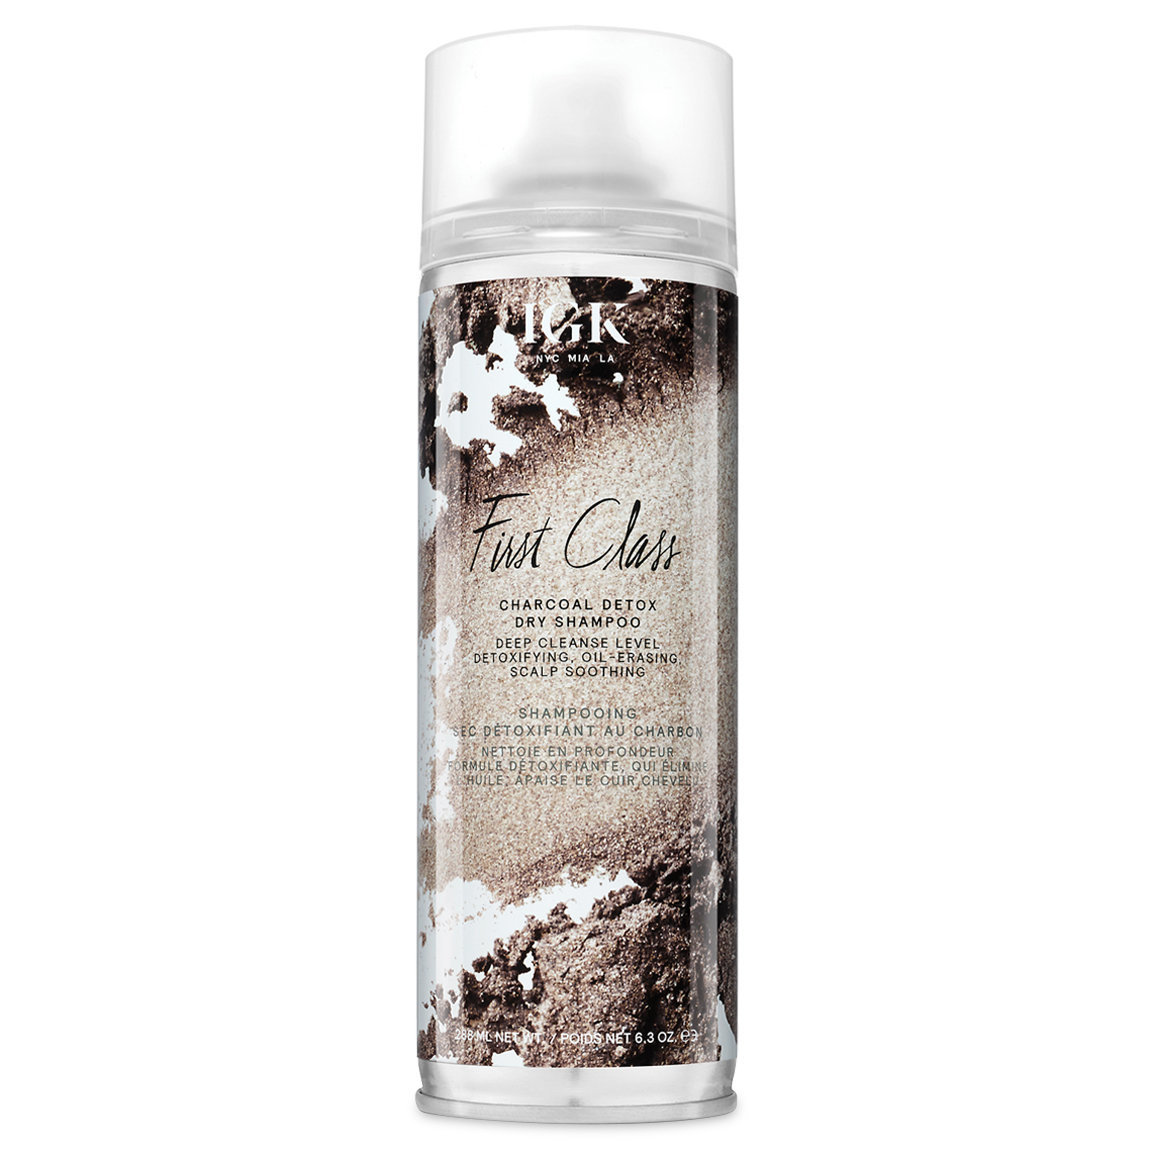 IGK First Class Charcoal Detox Dry Shampoo 6.3 oz product swatch.